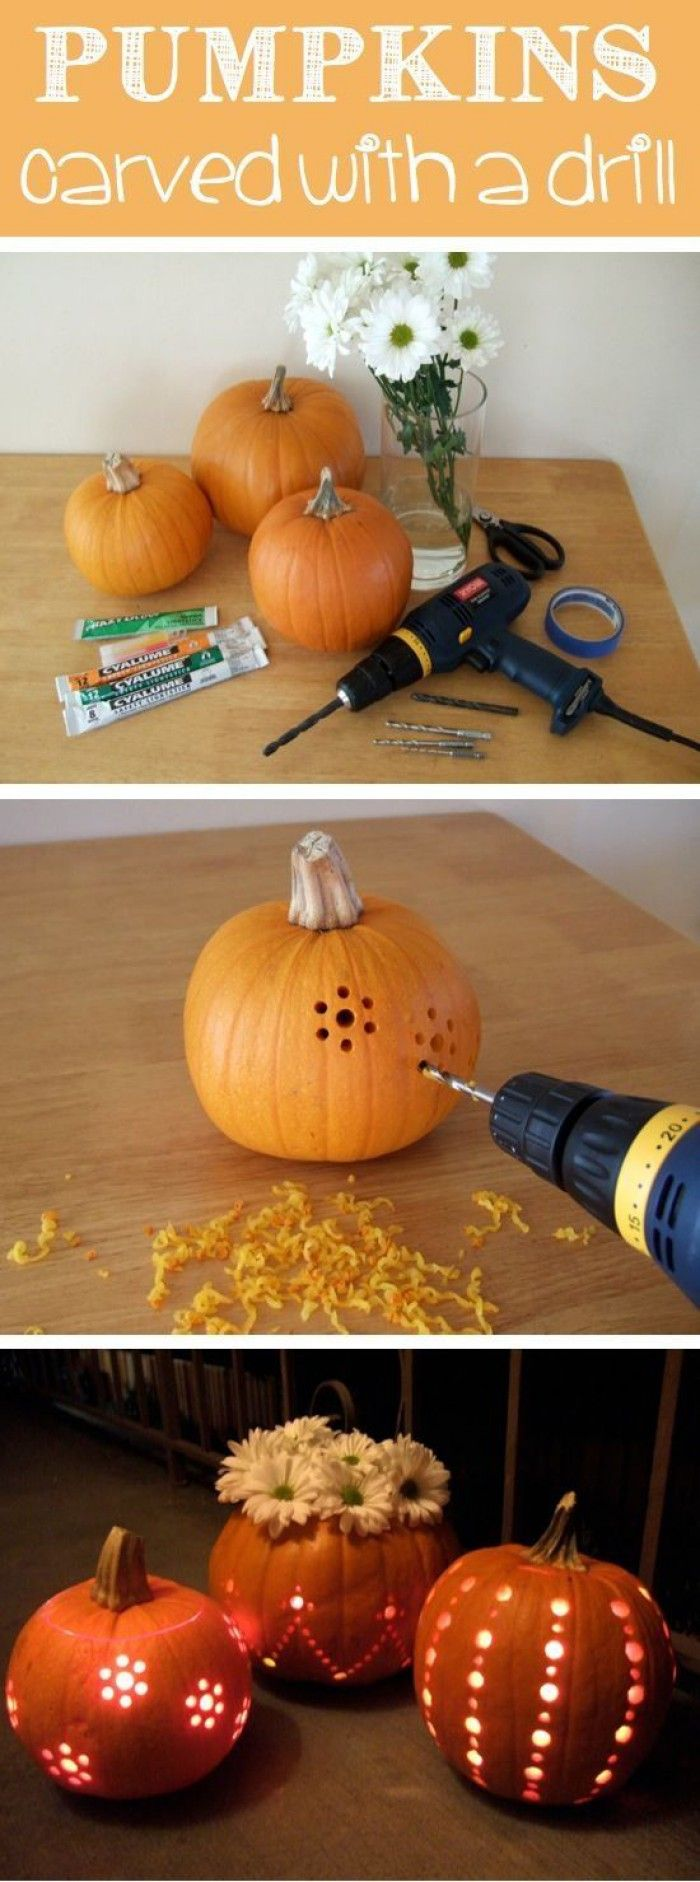 Best 20+ Pumpkin drilling ideas on Pinterest | Unique pumpkin ...